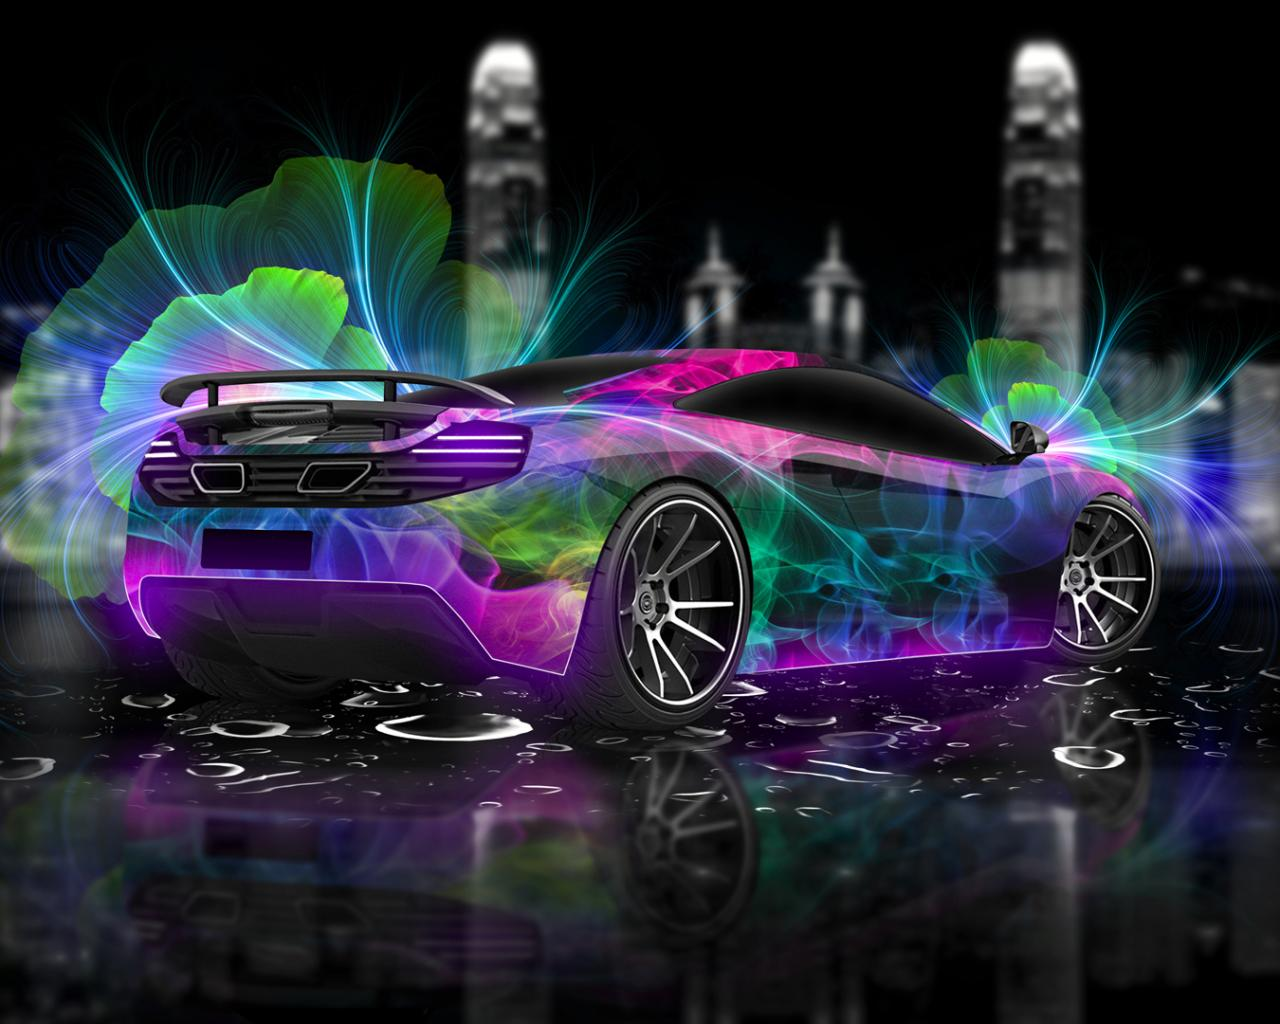 2015 2016 Coolest Cars Exotic Cars Sport Cars Car Wallpaper 1280x1024